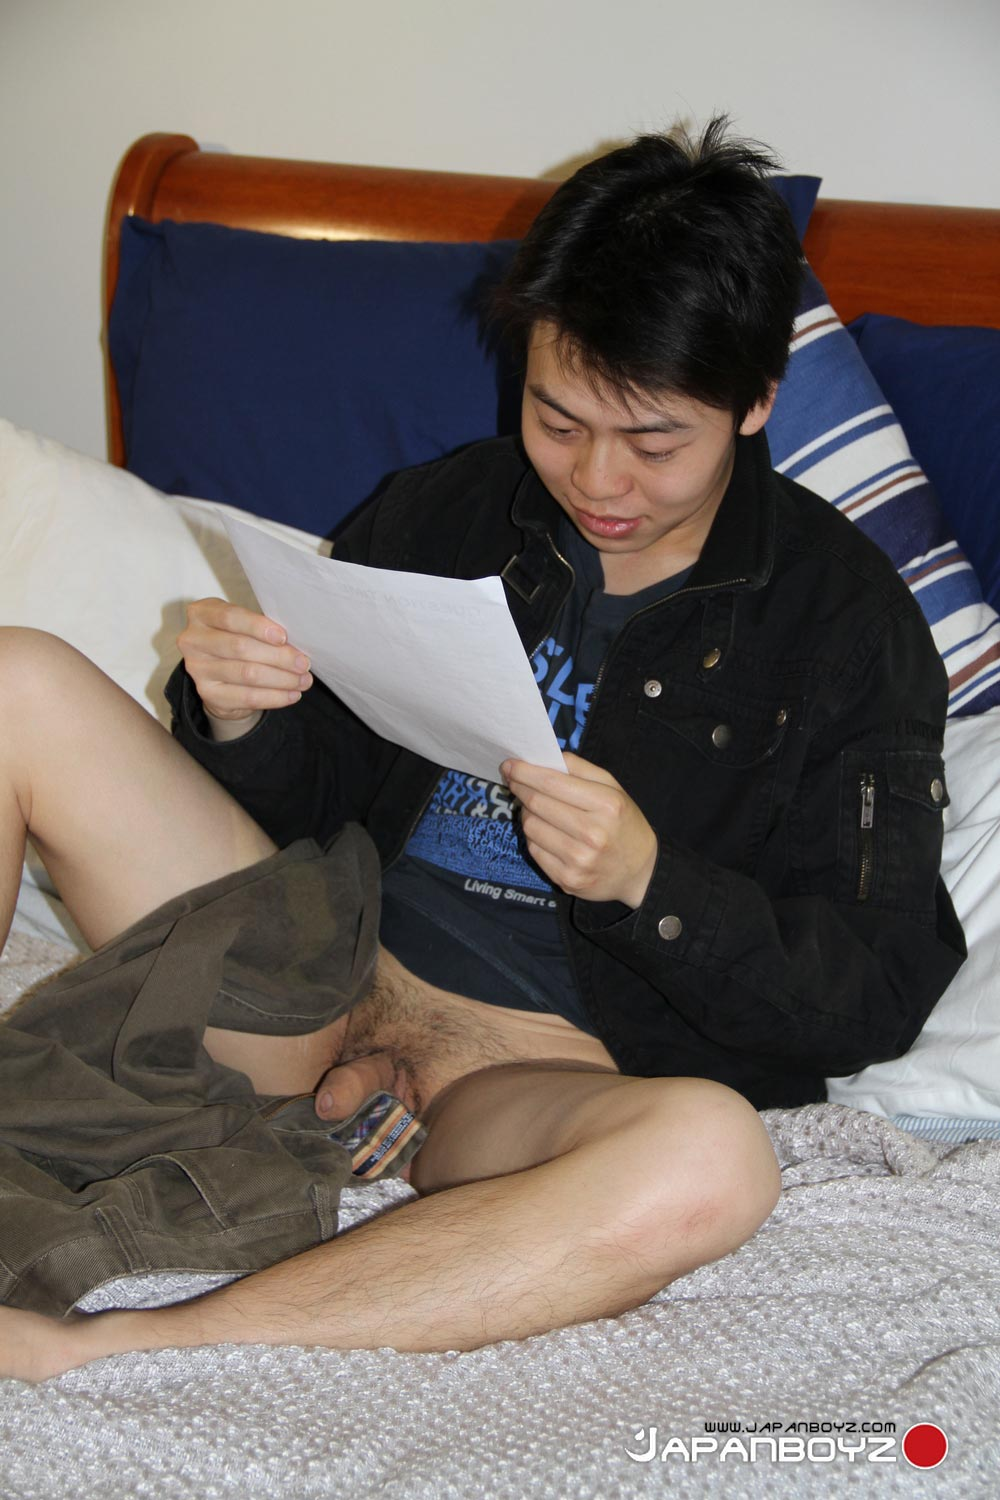 JapanBoyz-Suzuki-Asian-Twink-With-Big-Uncut-Cock-Jerking-Off-Amateur-Gay-Porn-08 Amateur Japanese Twink Suzuki Strokes His Big Uncut Asian Cock